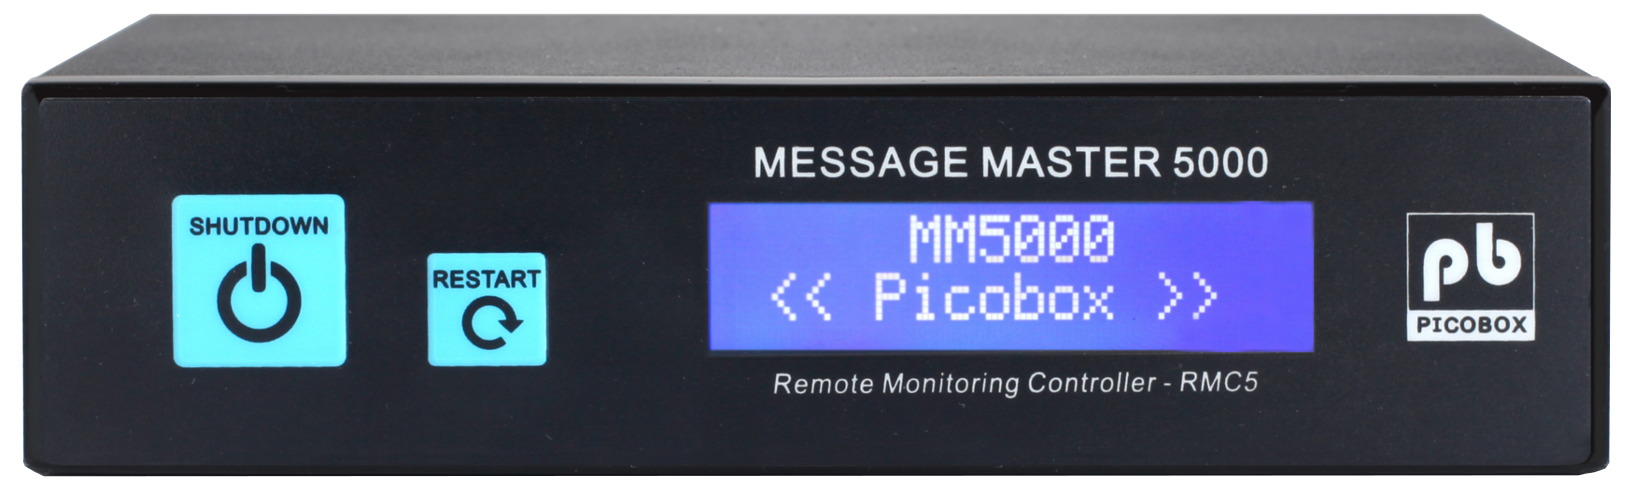 MM5K- picobox modbus snmp, sms, pushover and picobox data cloud